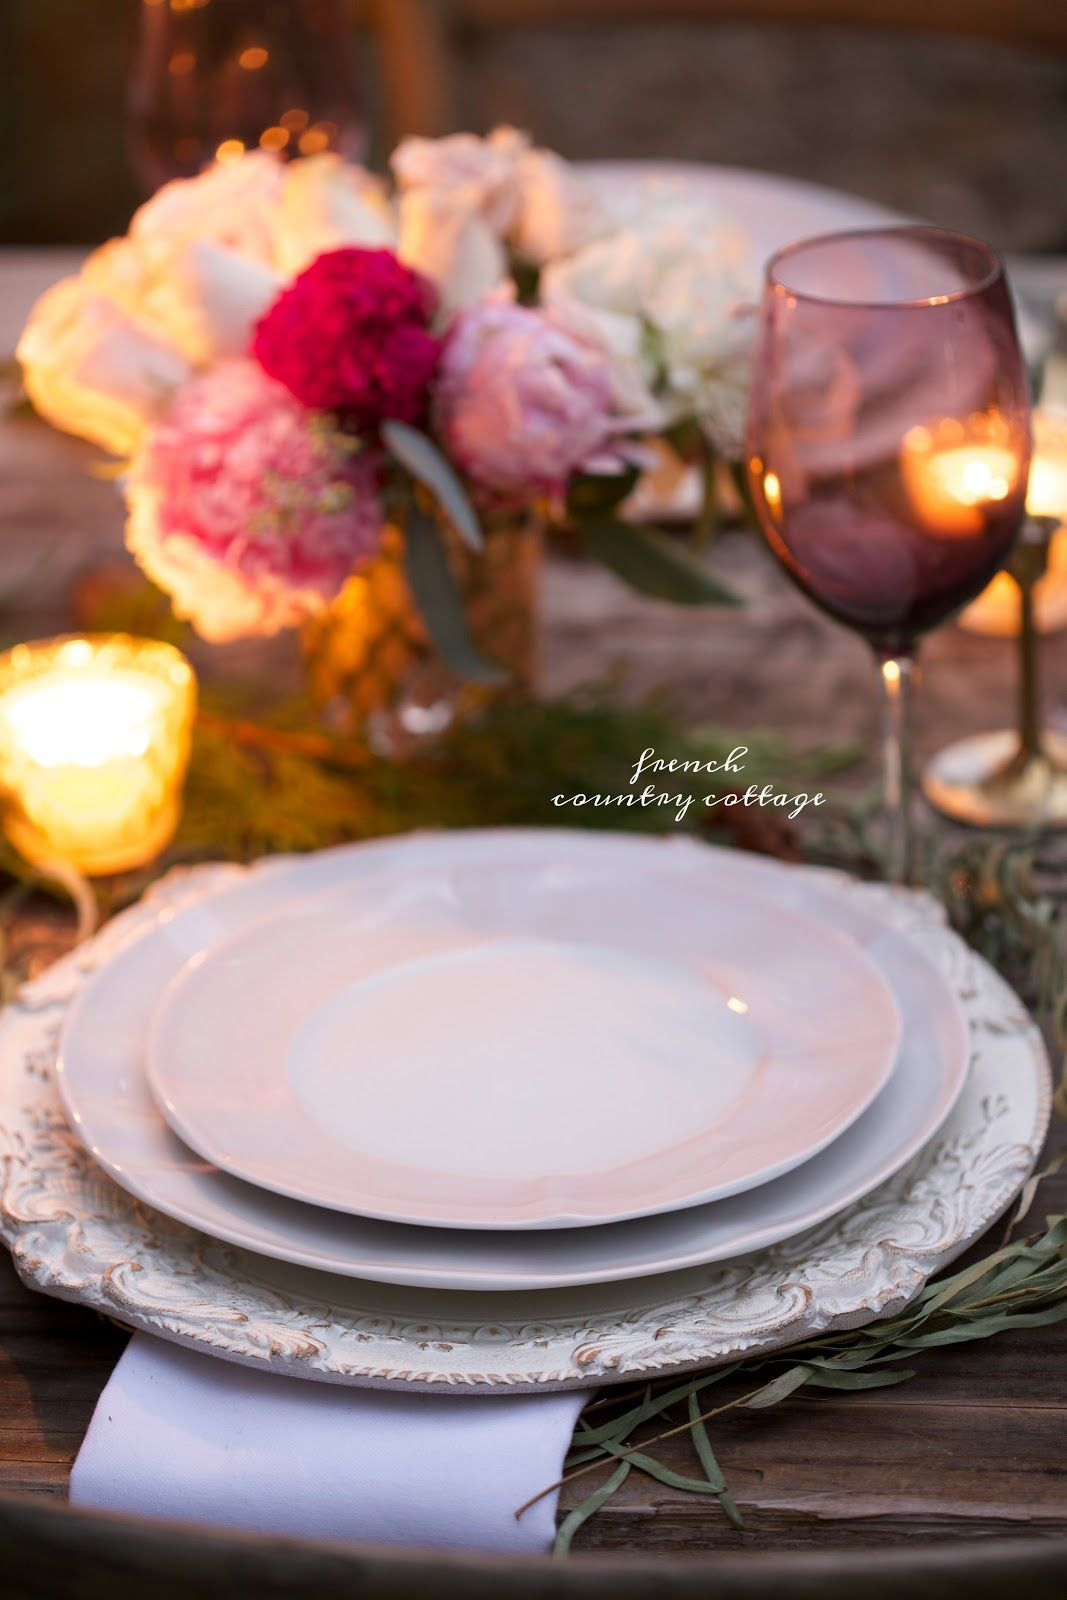 A romantic holiday party table setting | Outdoor living, Romantic ...